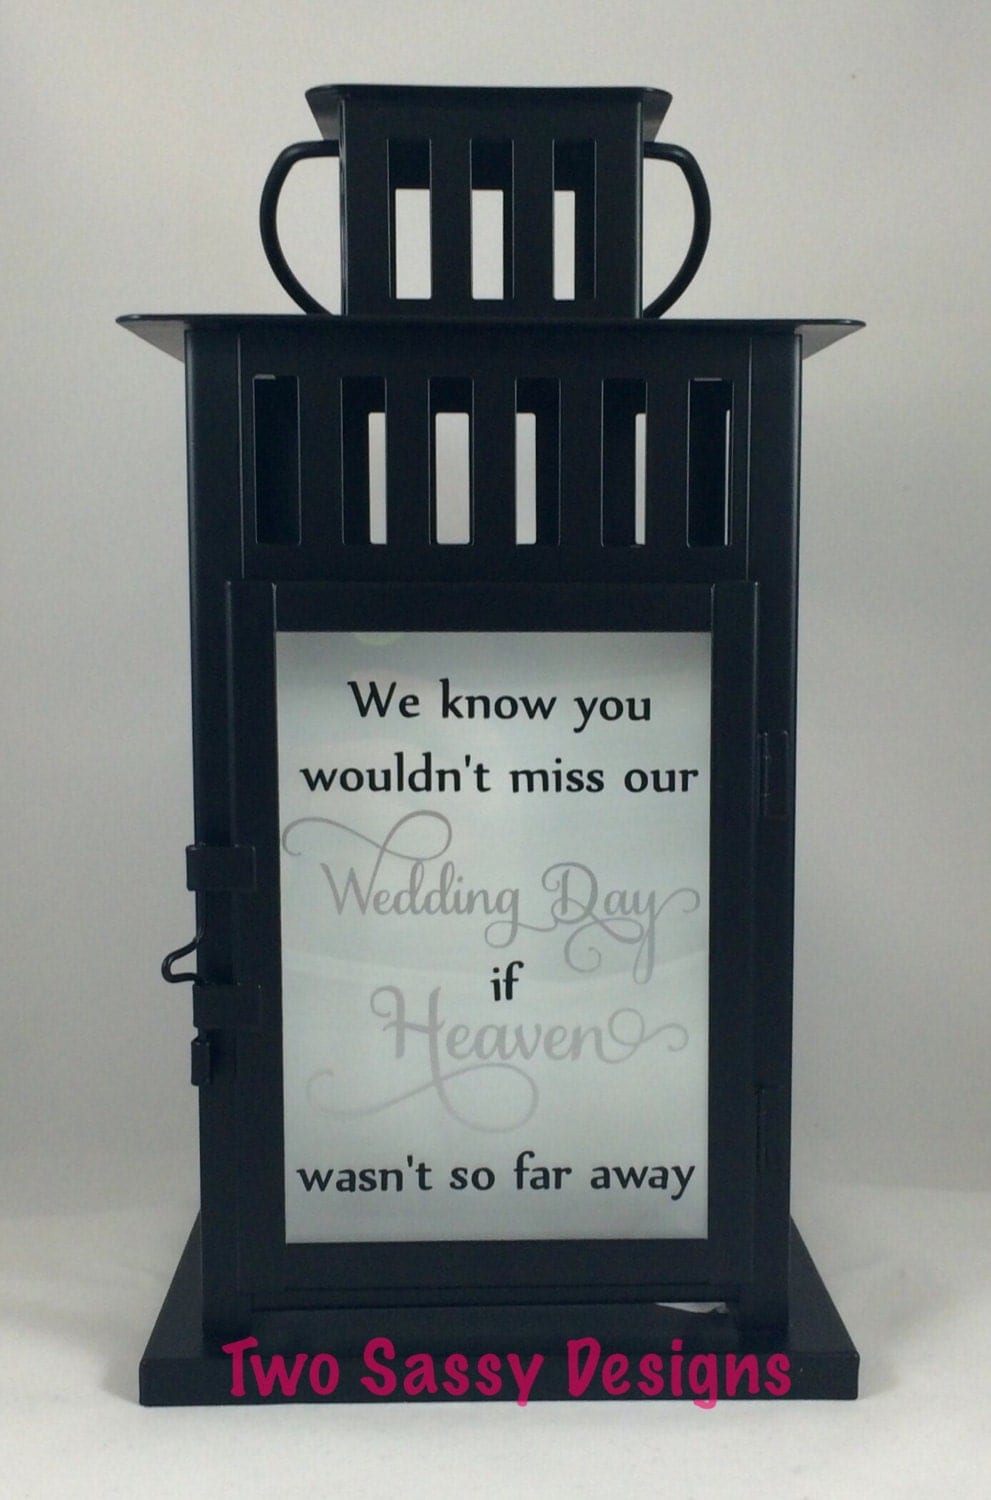 Memory lantern wedding table candle